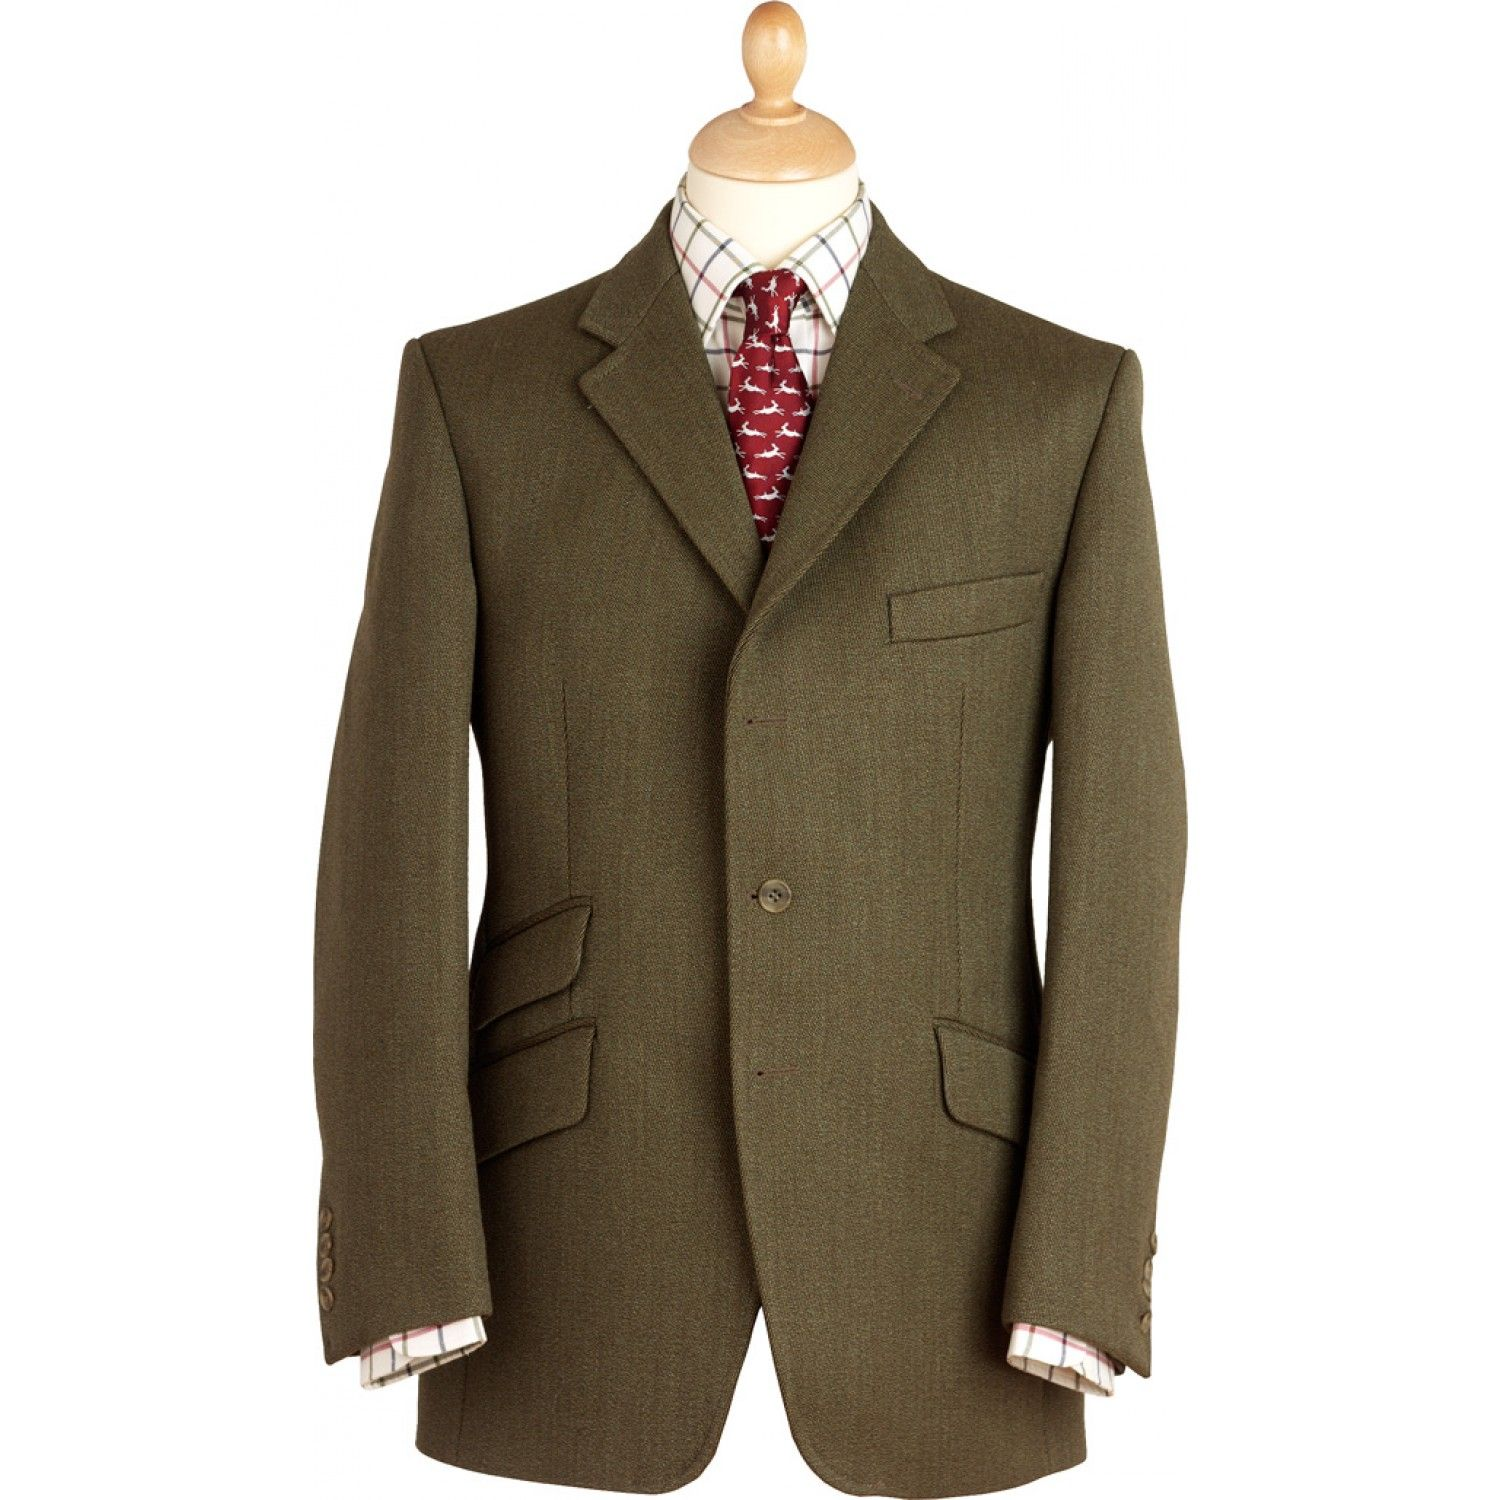 Tweed Jacket Photo Album - Get Your Fashion Style